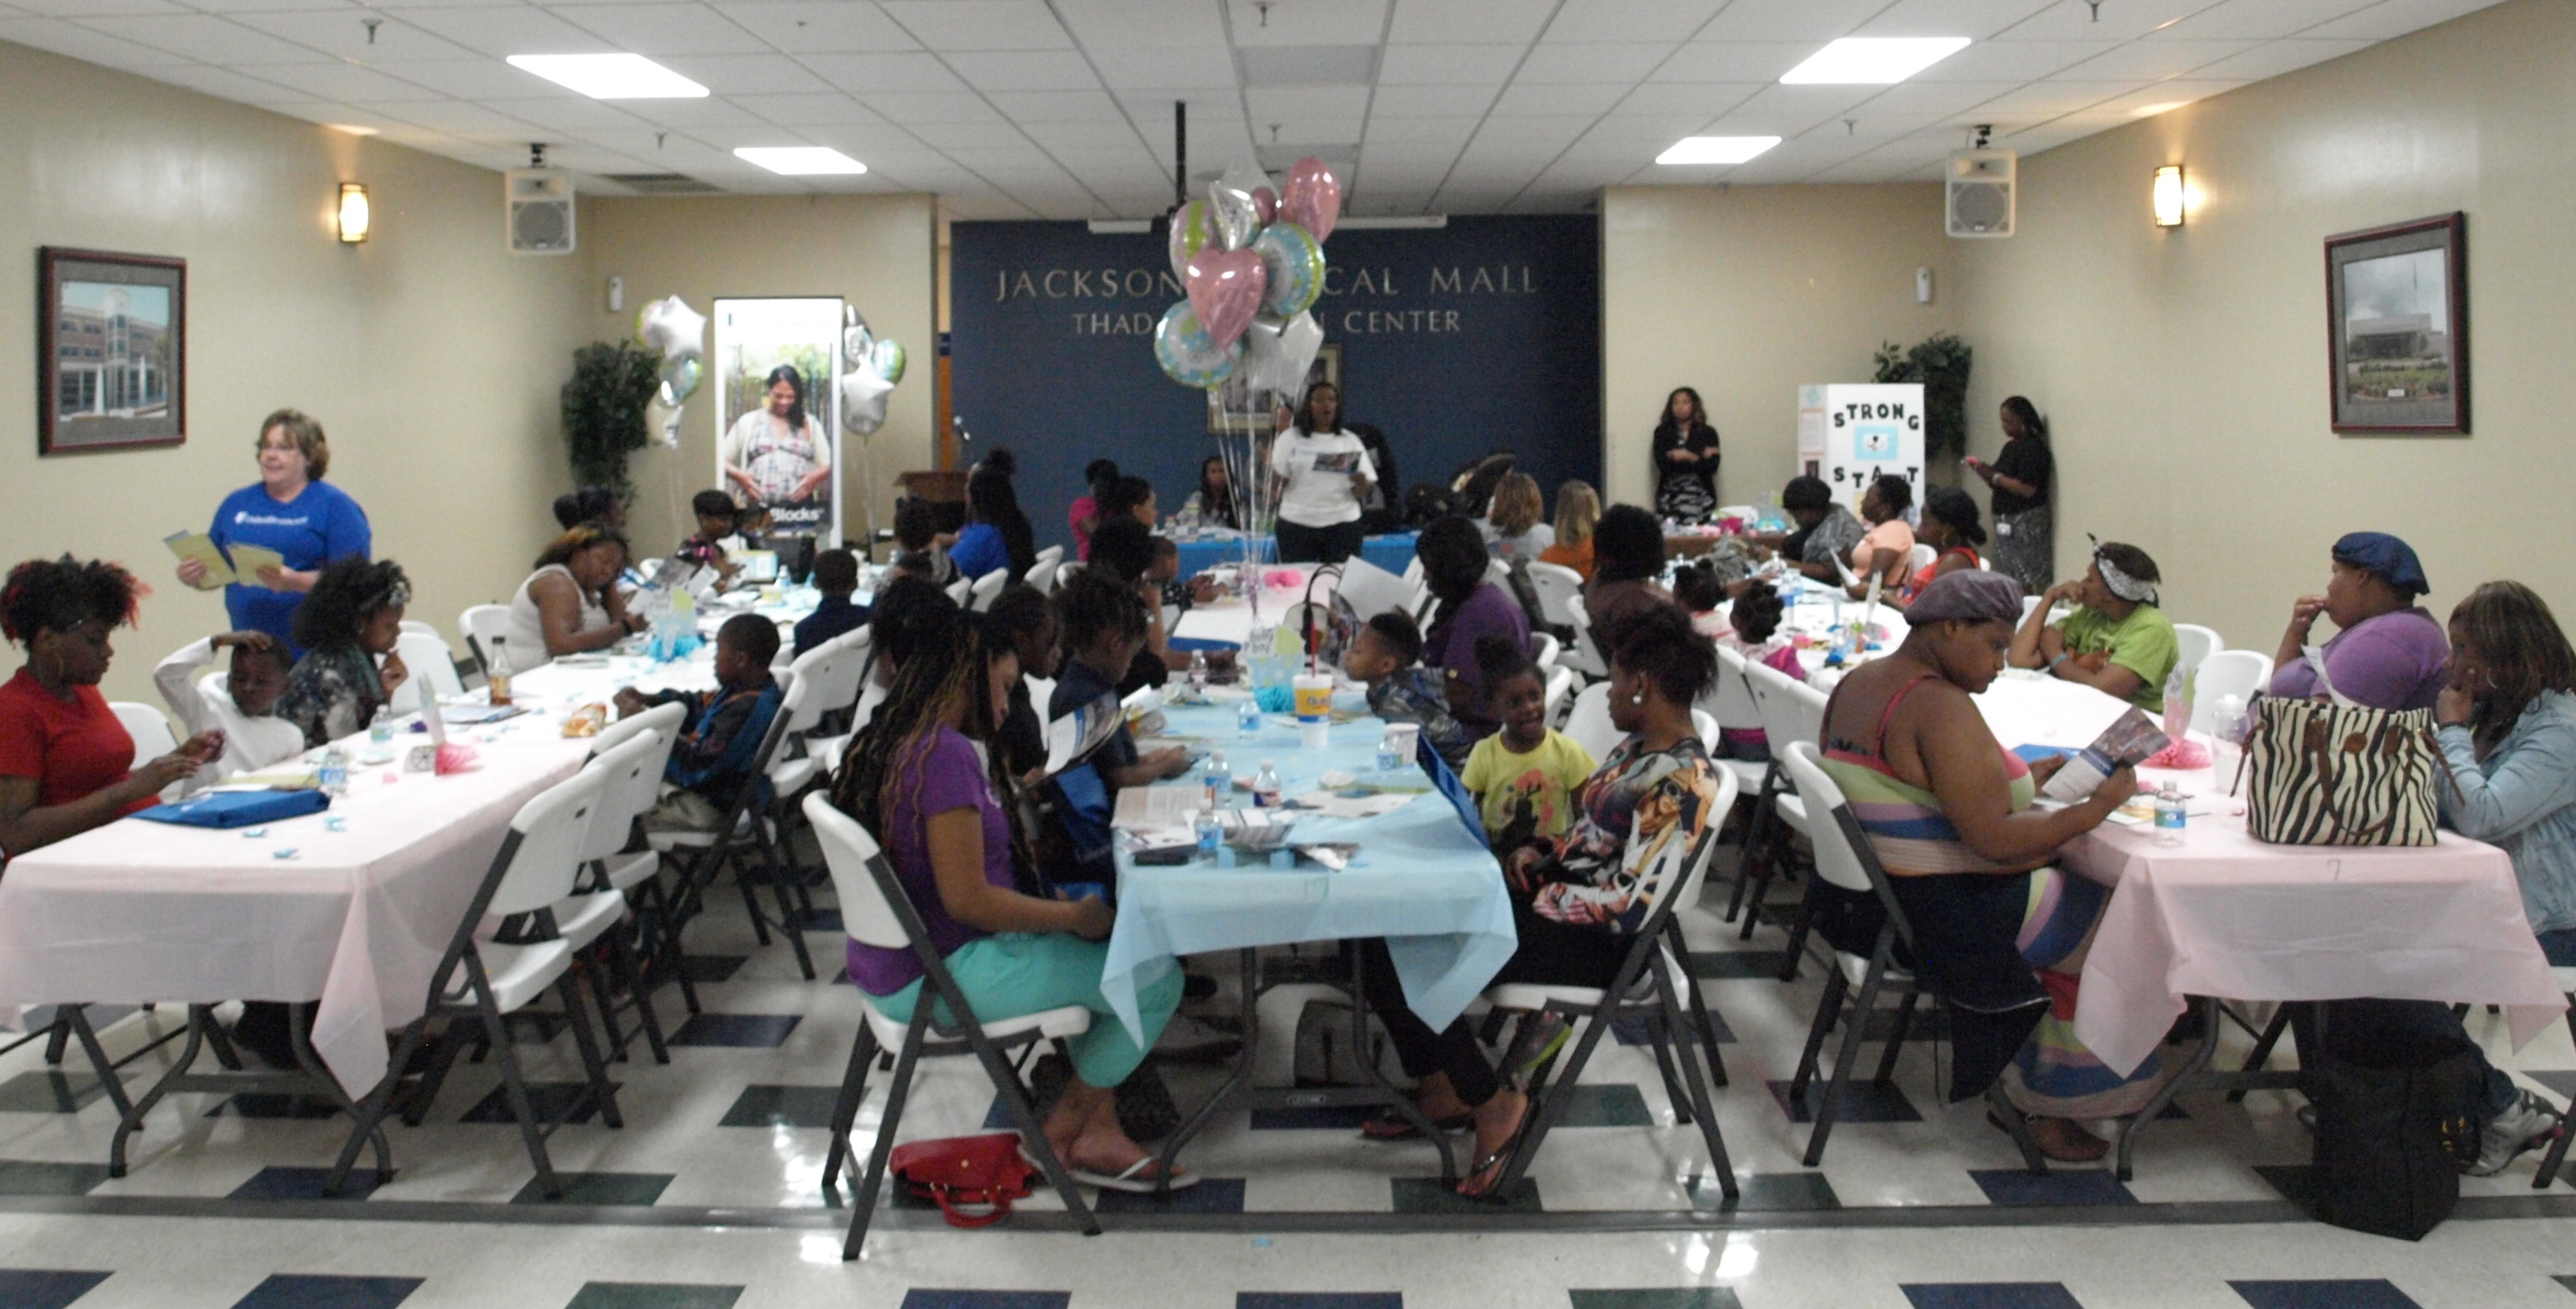 UnitedHealthcare Hosts Baby Shower at Family Health Center for Moms ...